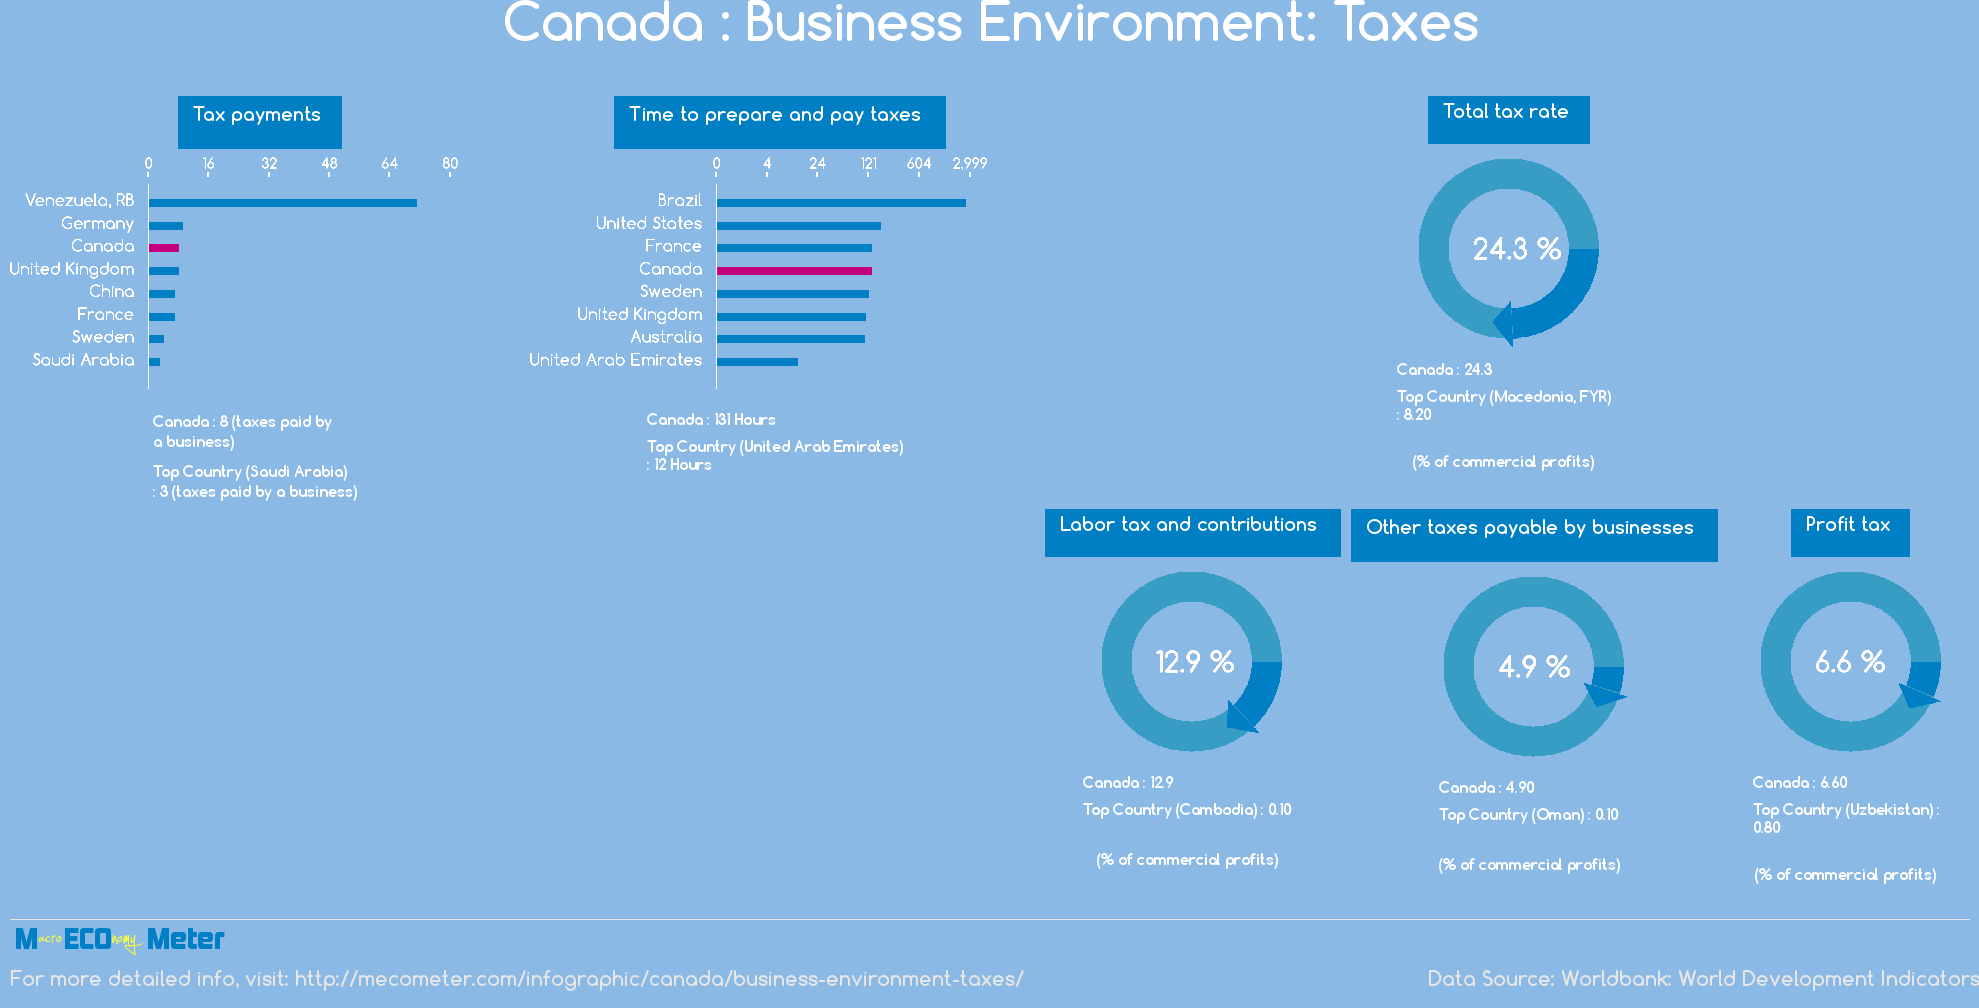 Canada : Business Environment: Taxes